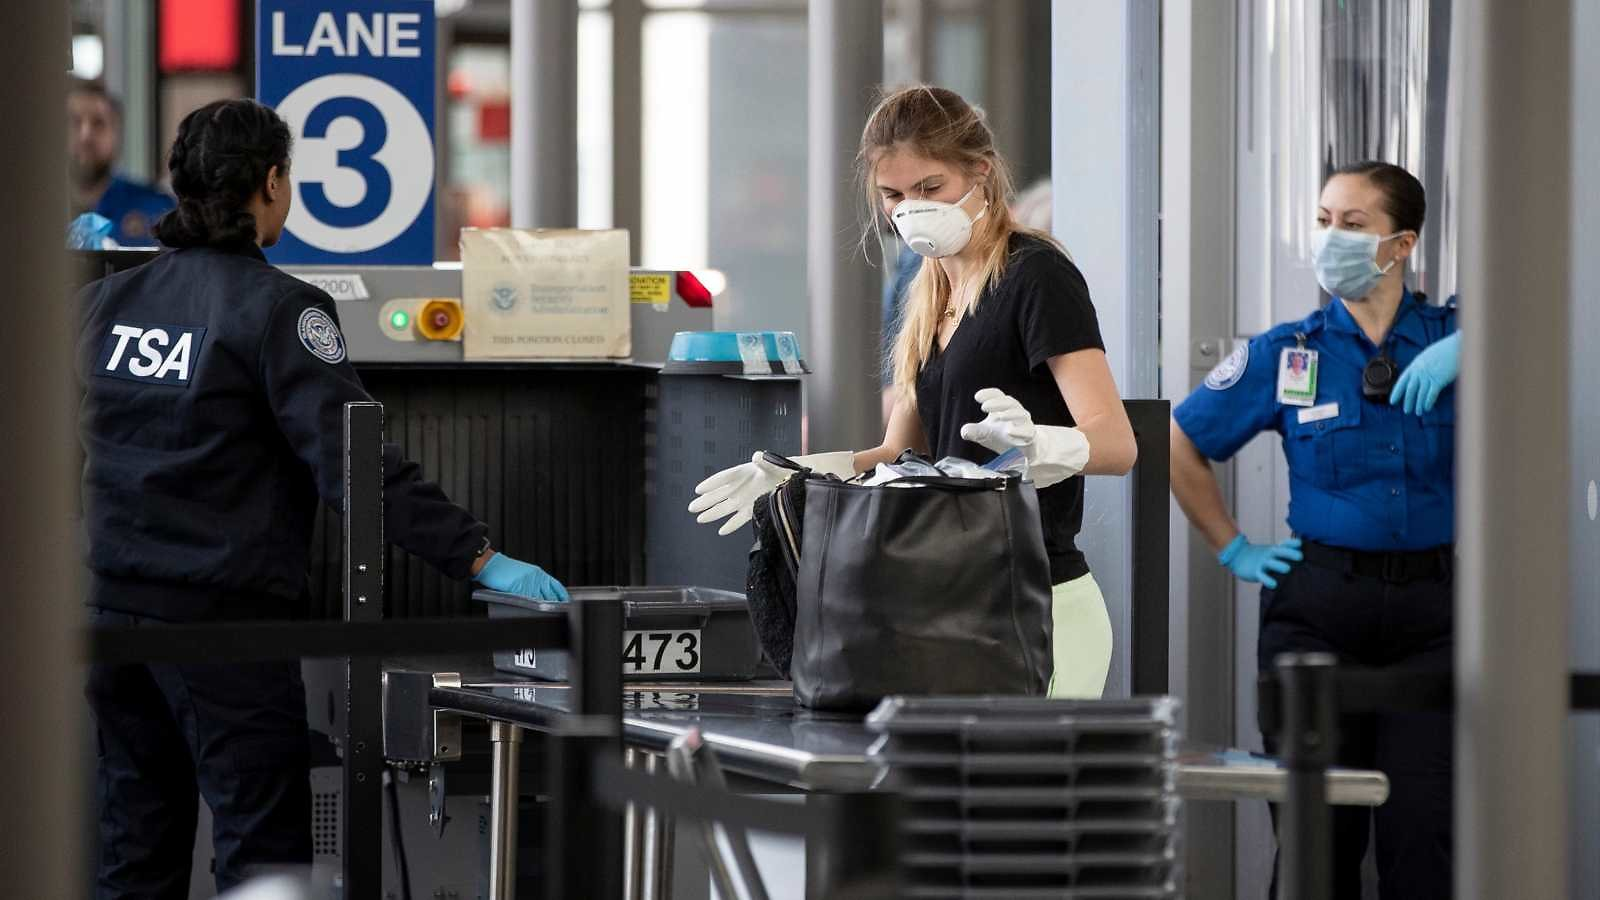 More People Flying? TSA Screens 1 Million Daily Passengers for First Time Since Pandemic Began